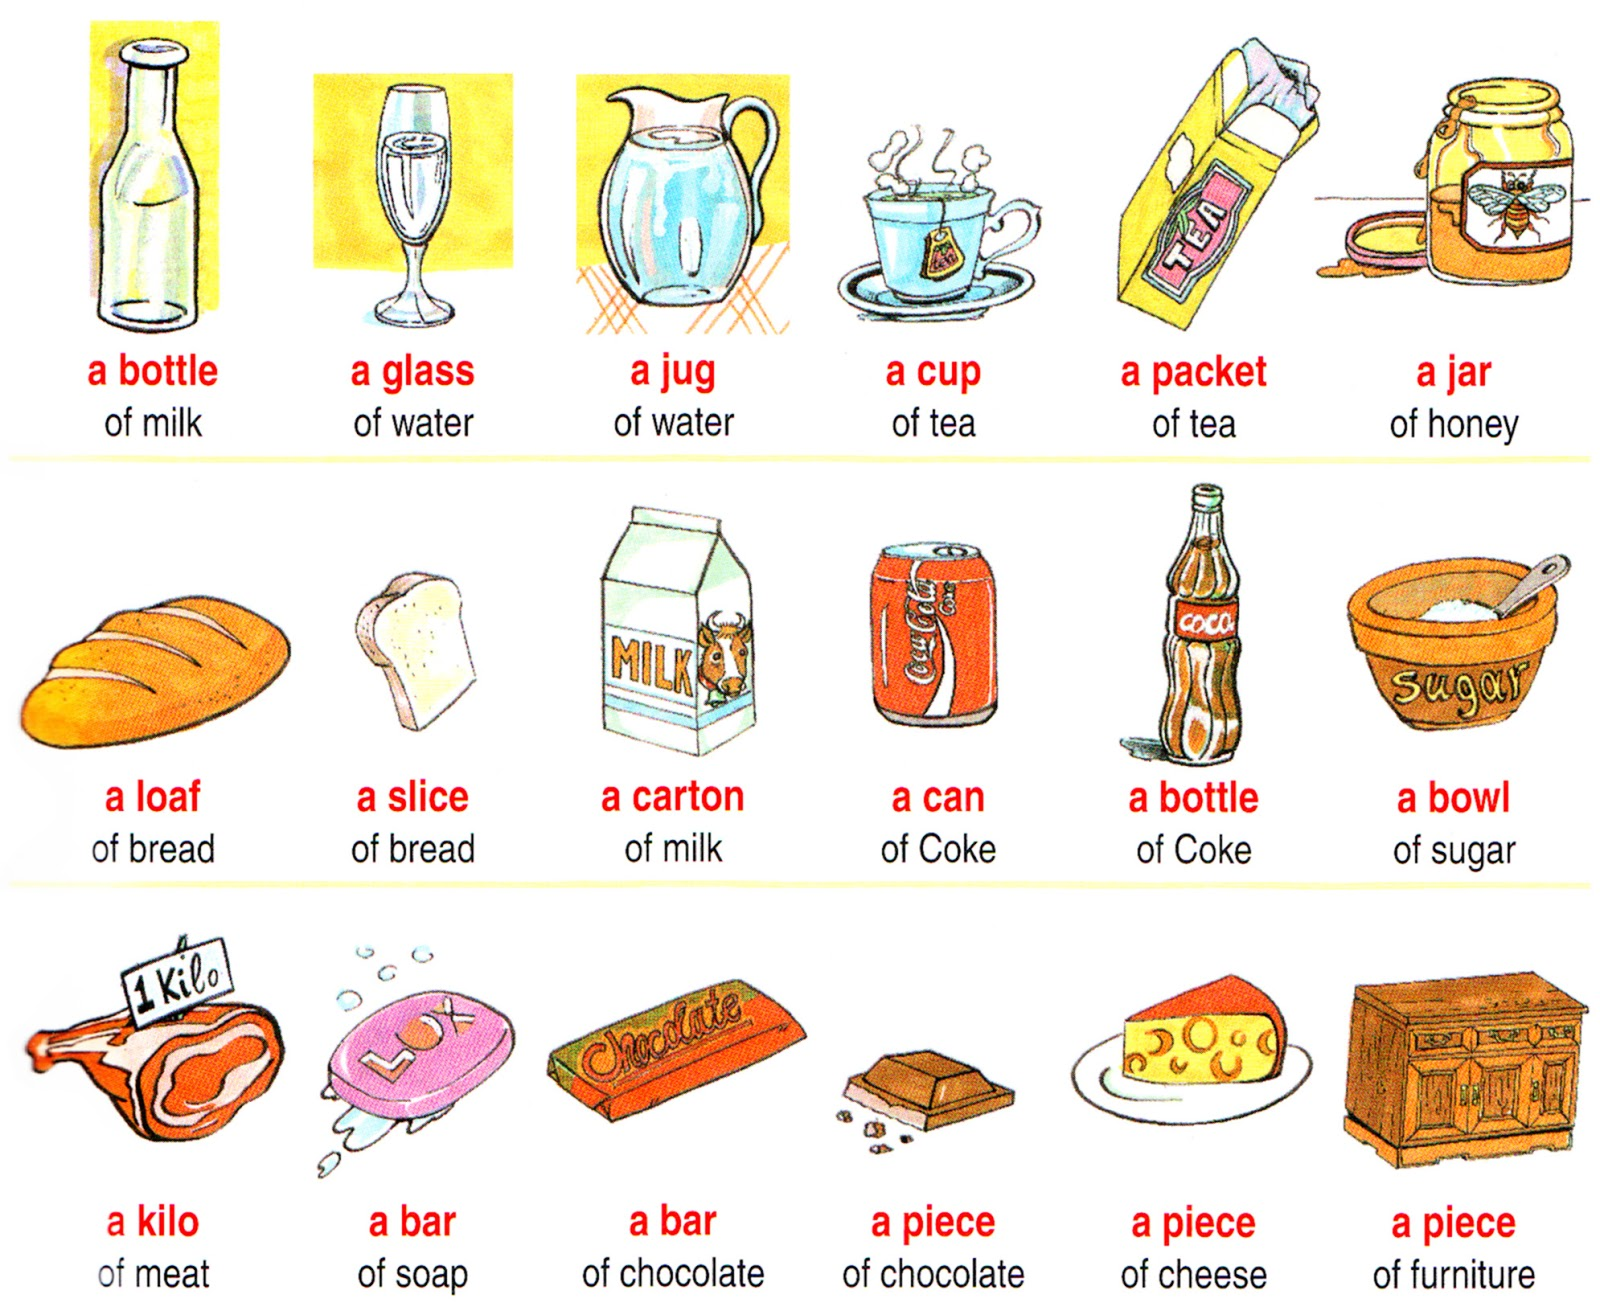 Food Countable or Uncountable http://ulfahfauziahsukmawati.blogspot.com/2013/01/countable-nouns-and-uncountable-nouns.html